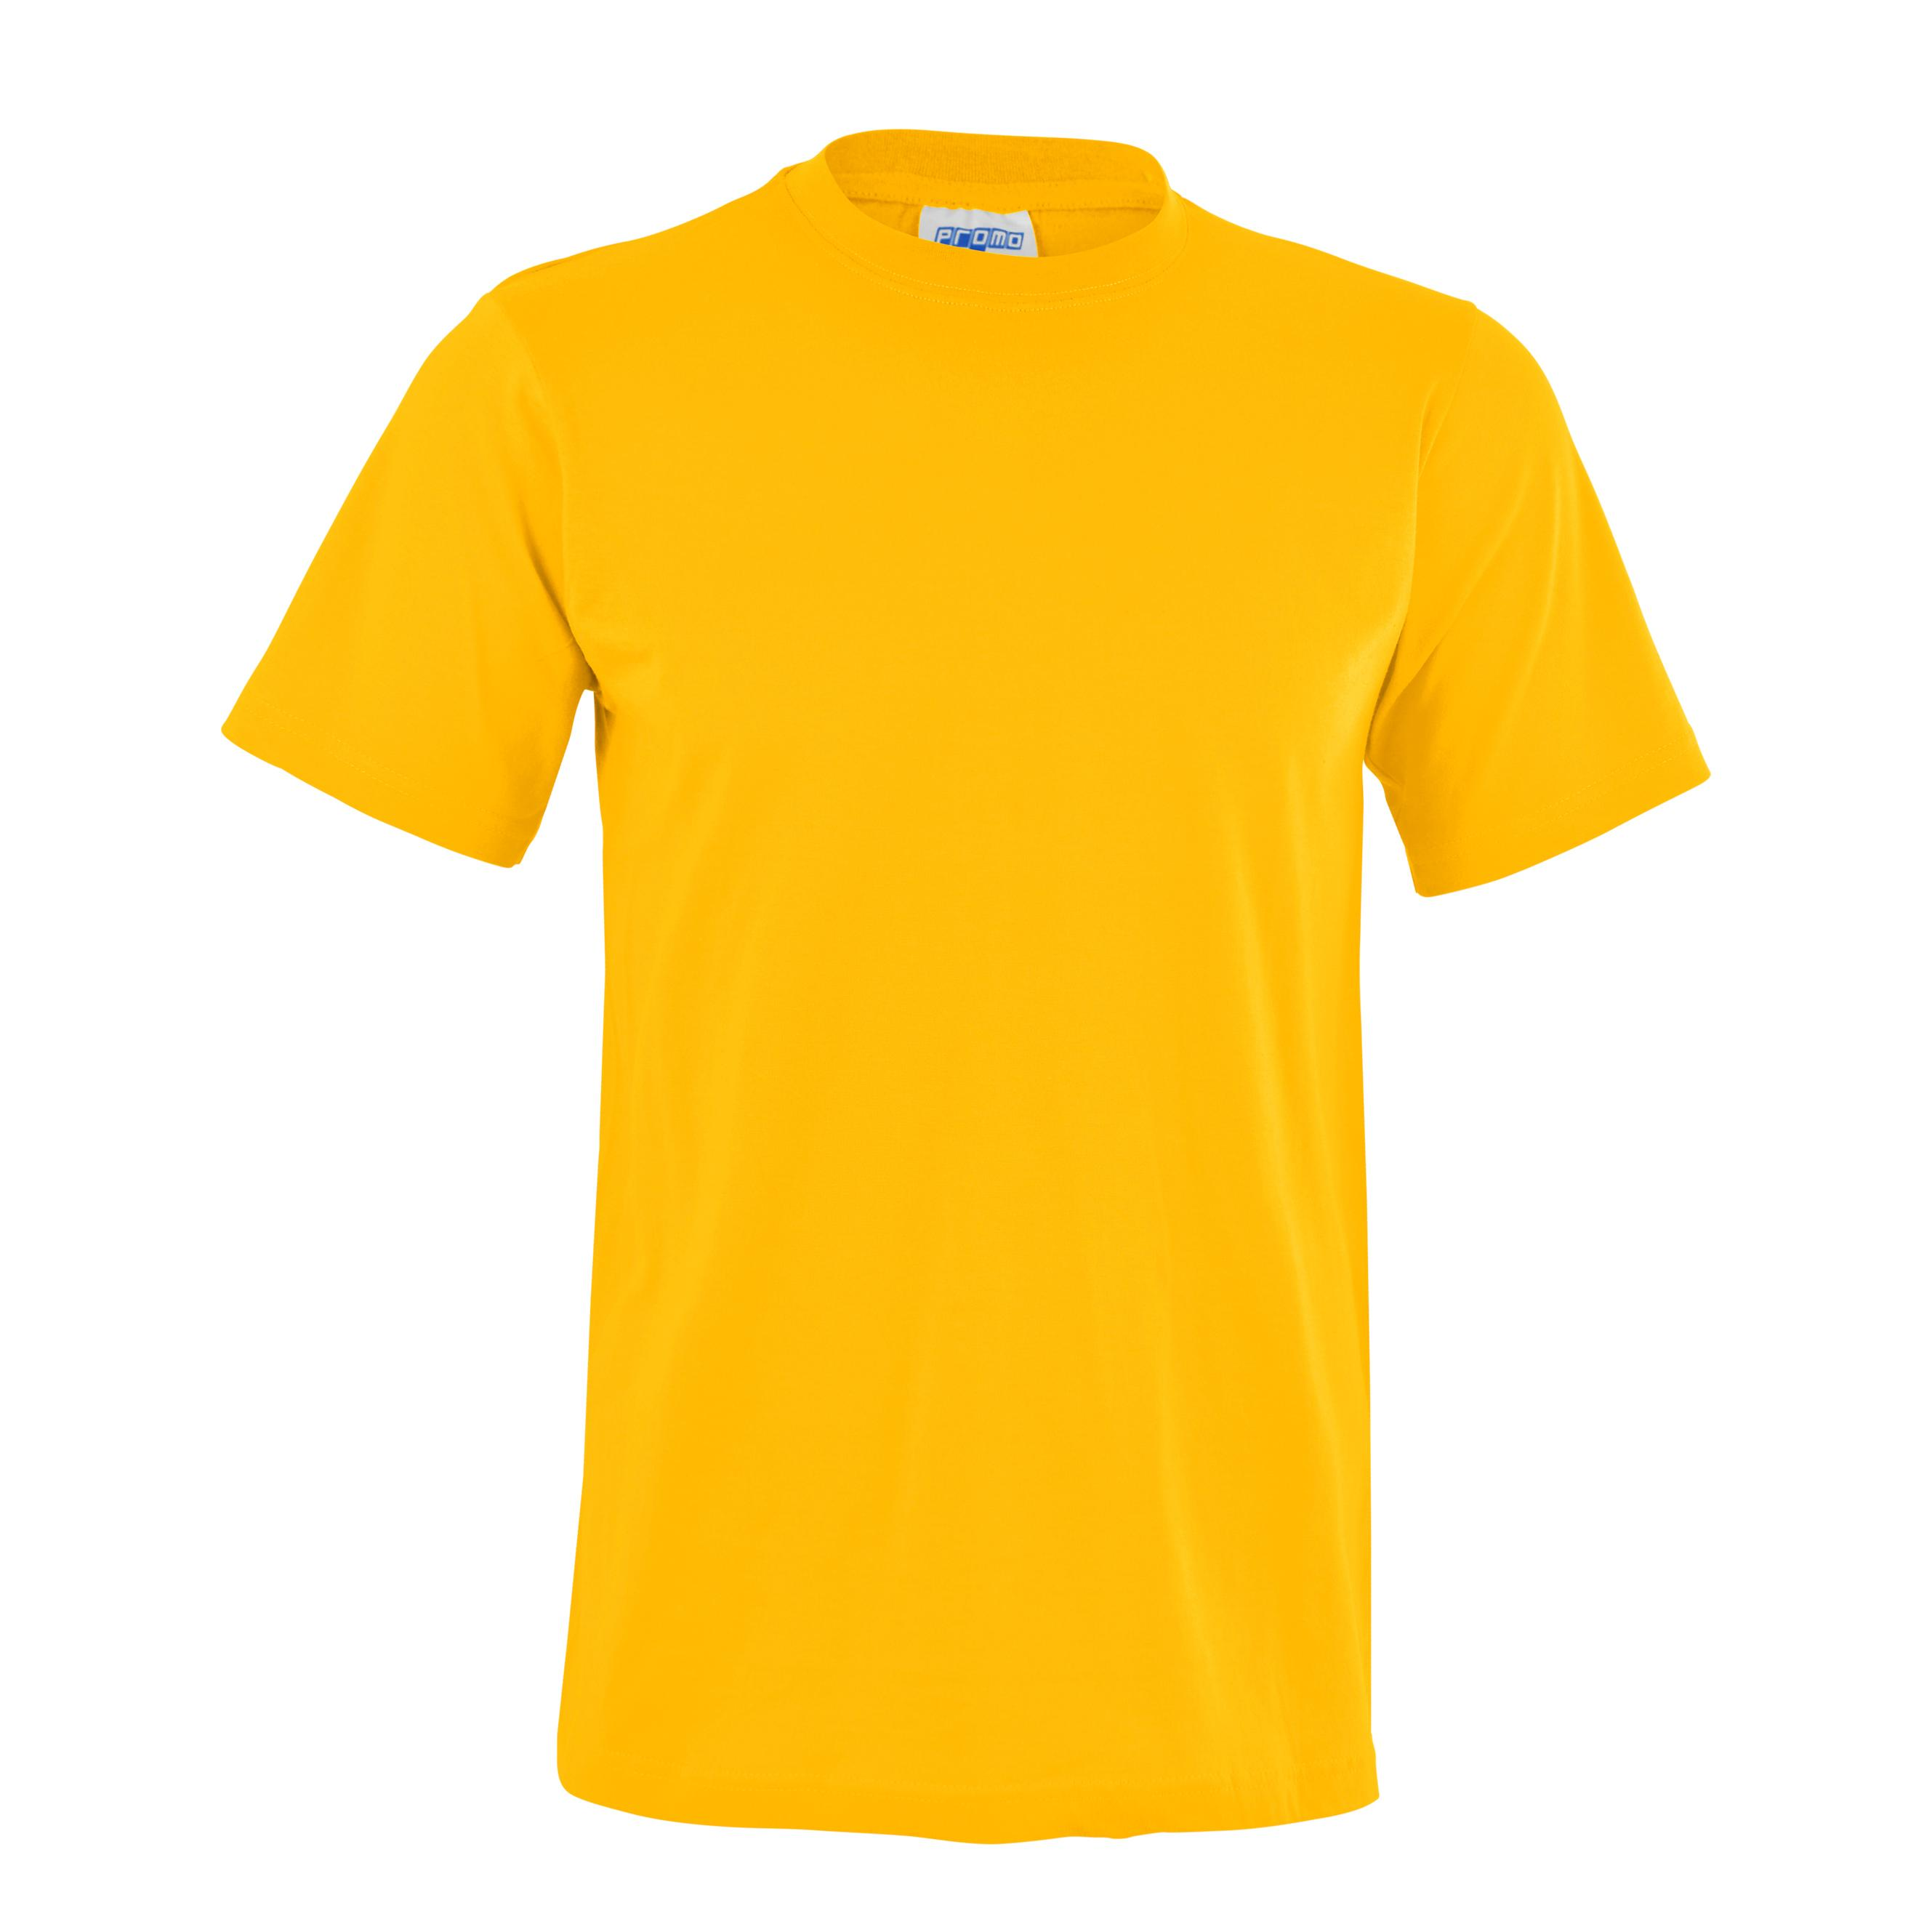 Unisex Promo T-shirt - Yellow Only